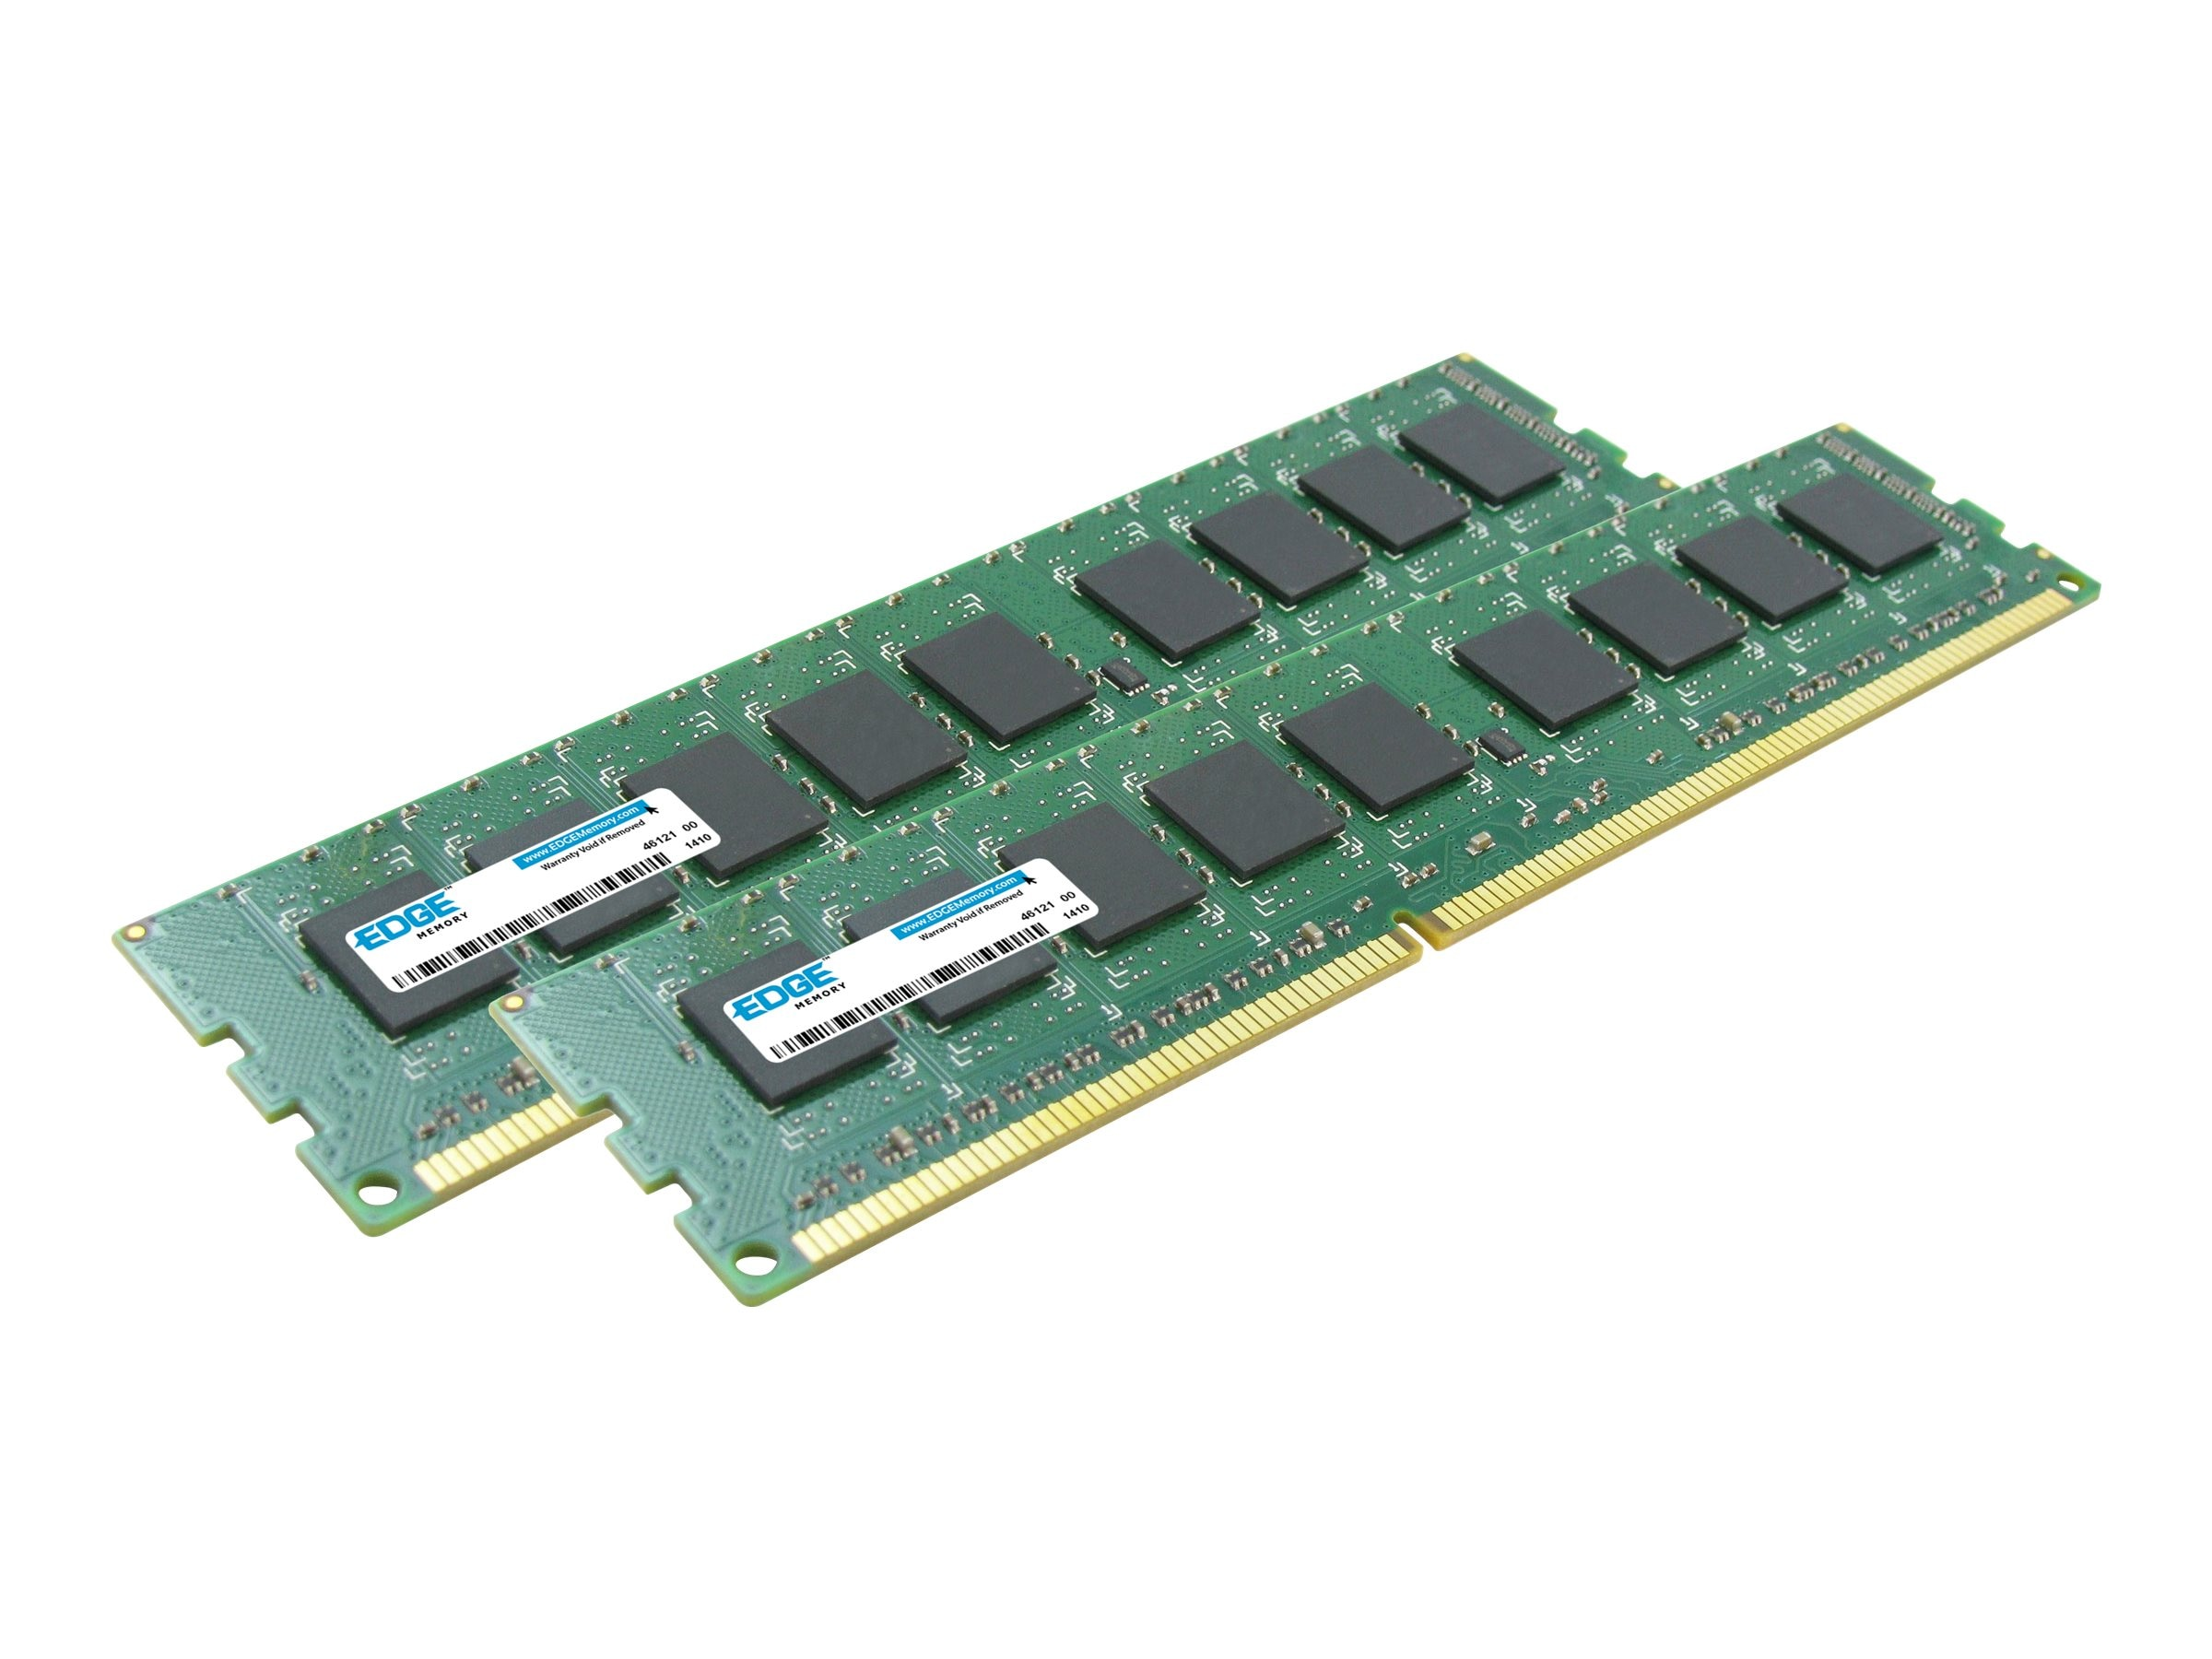 Edge 8GB PC3-10600 240-pin DDR3 SDRAM DIMM Kit, PE22292502